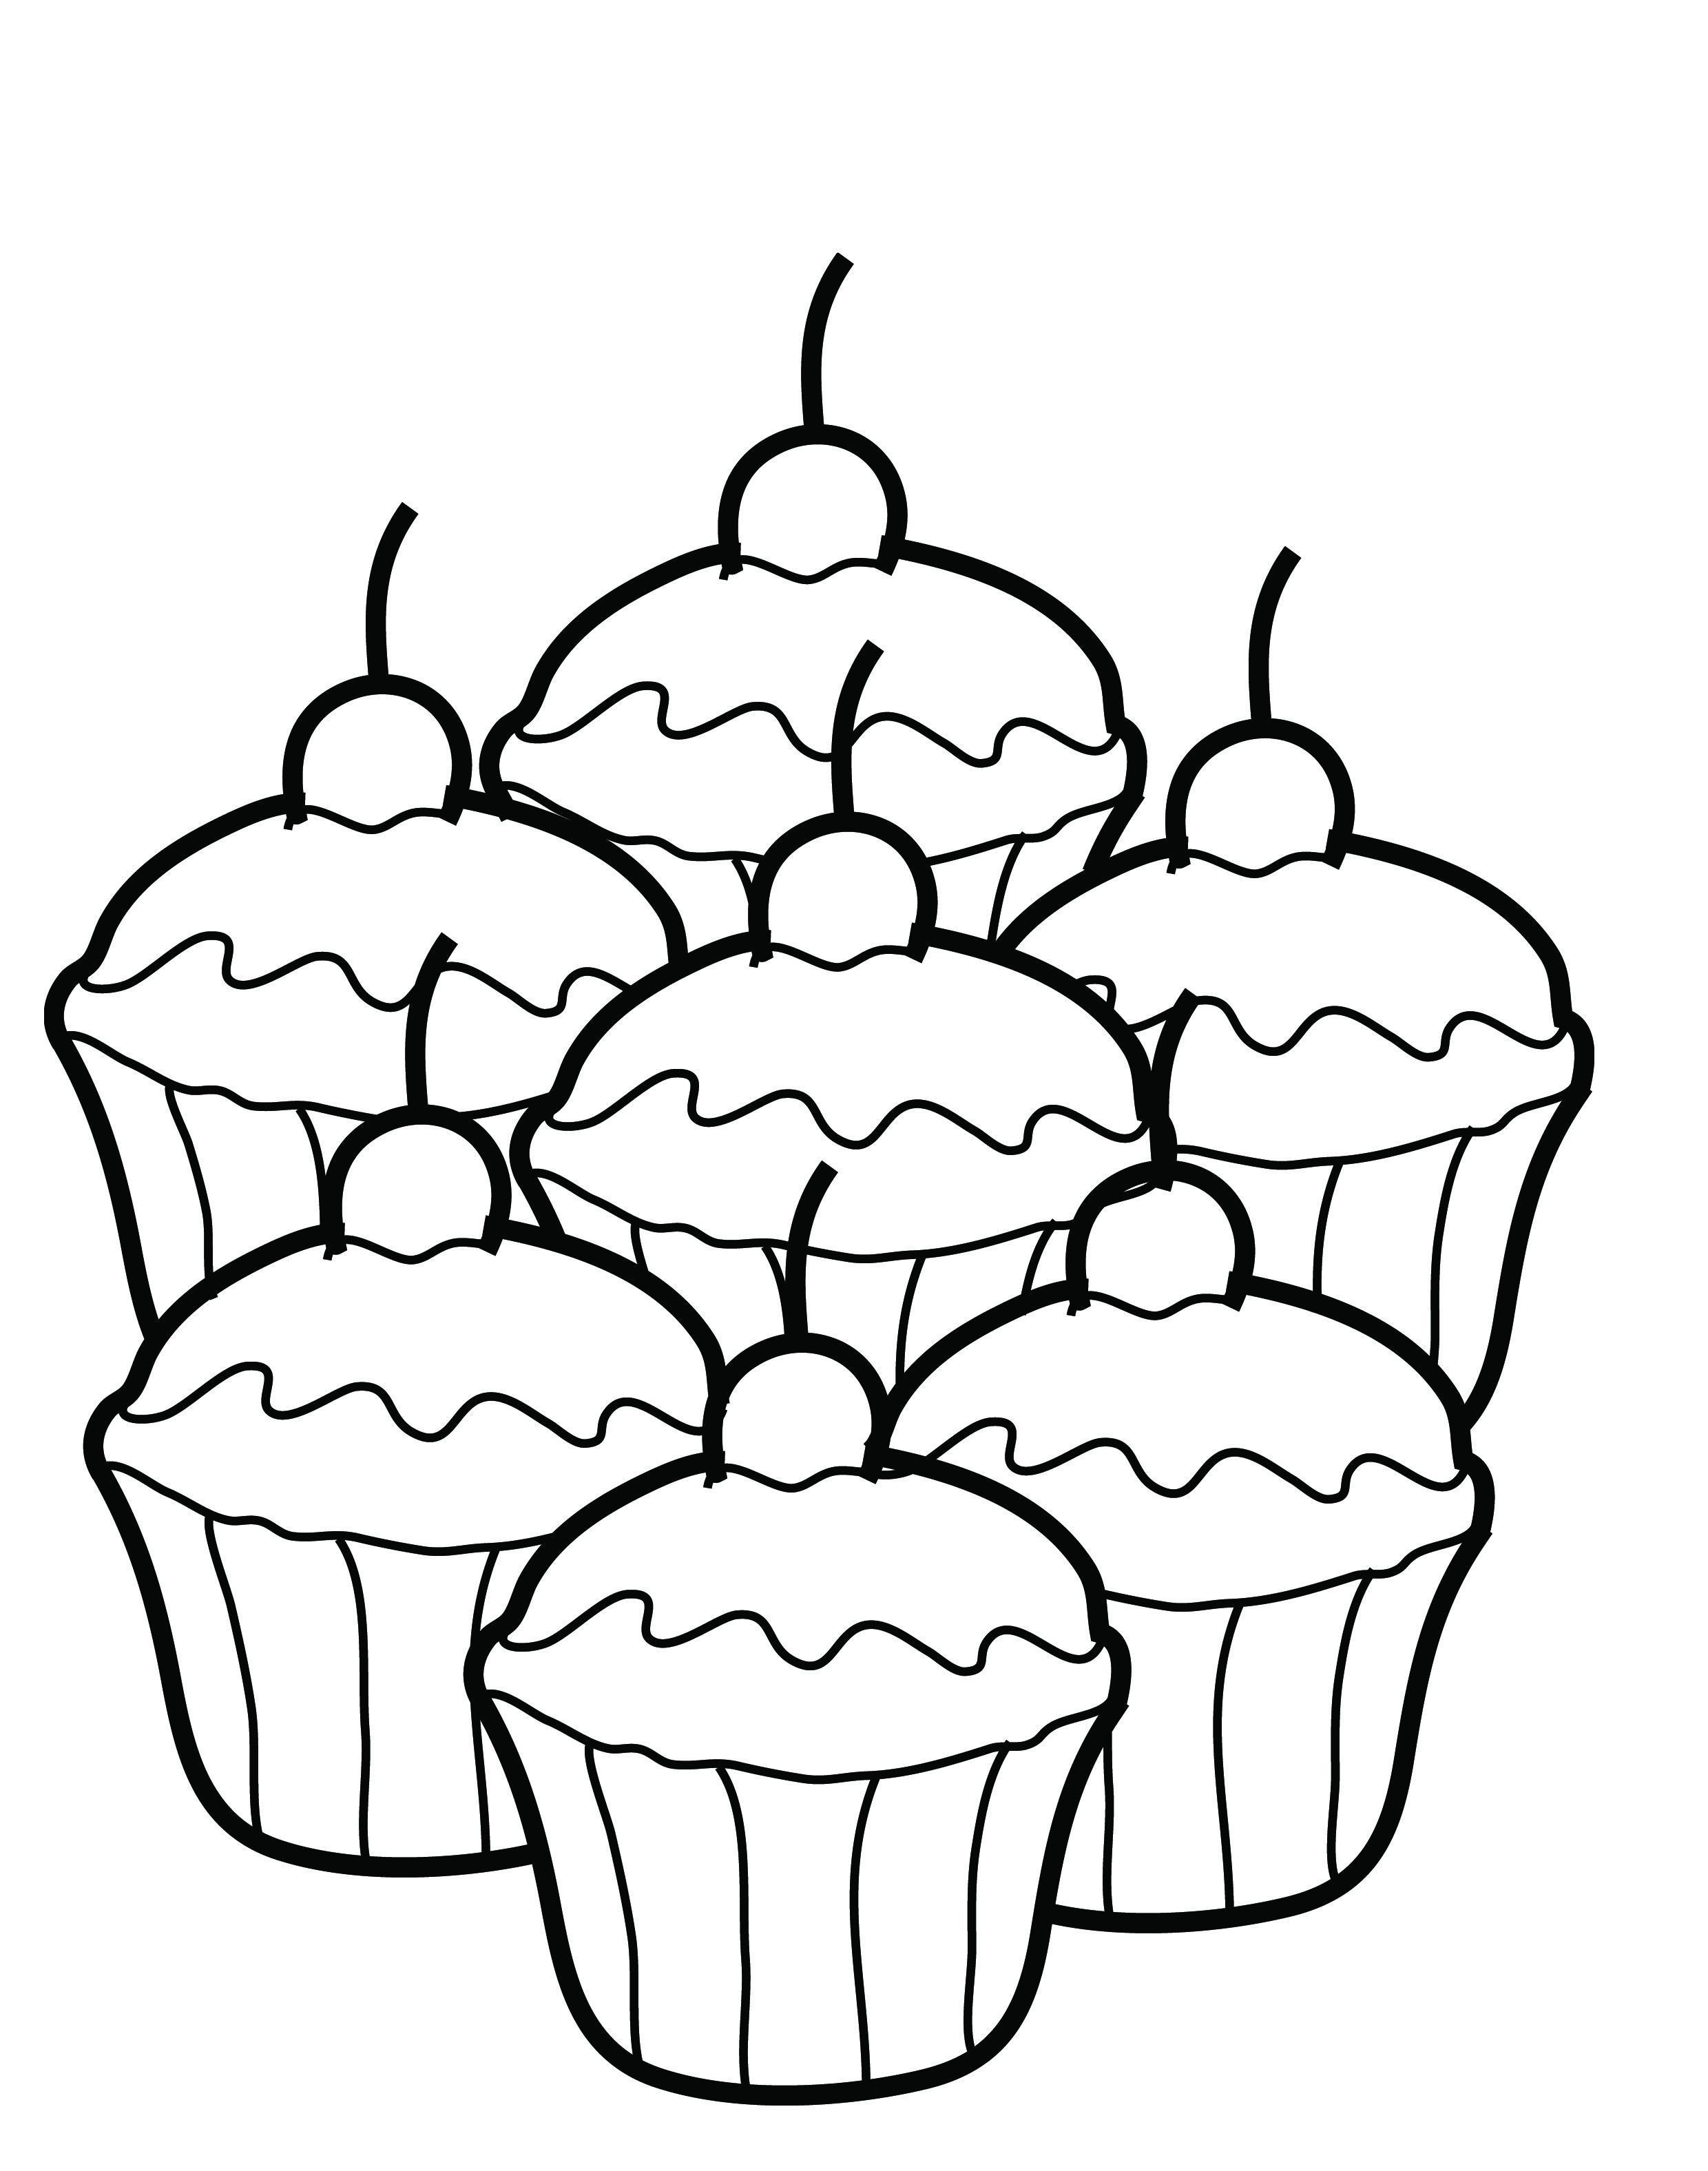 cupcake coloring pages for kids - Drawings For Kids To Color